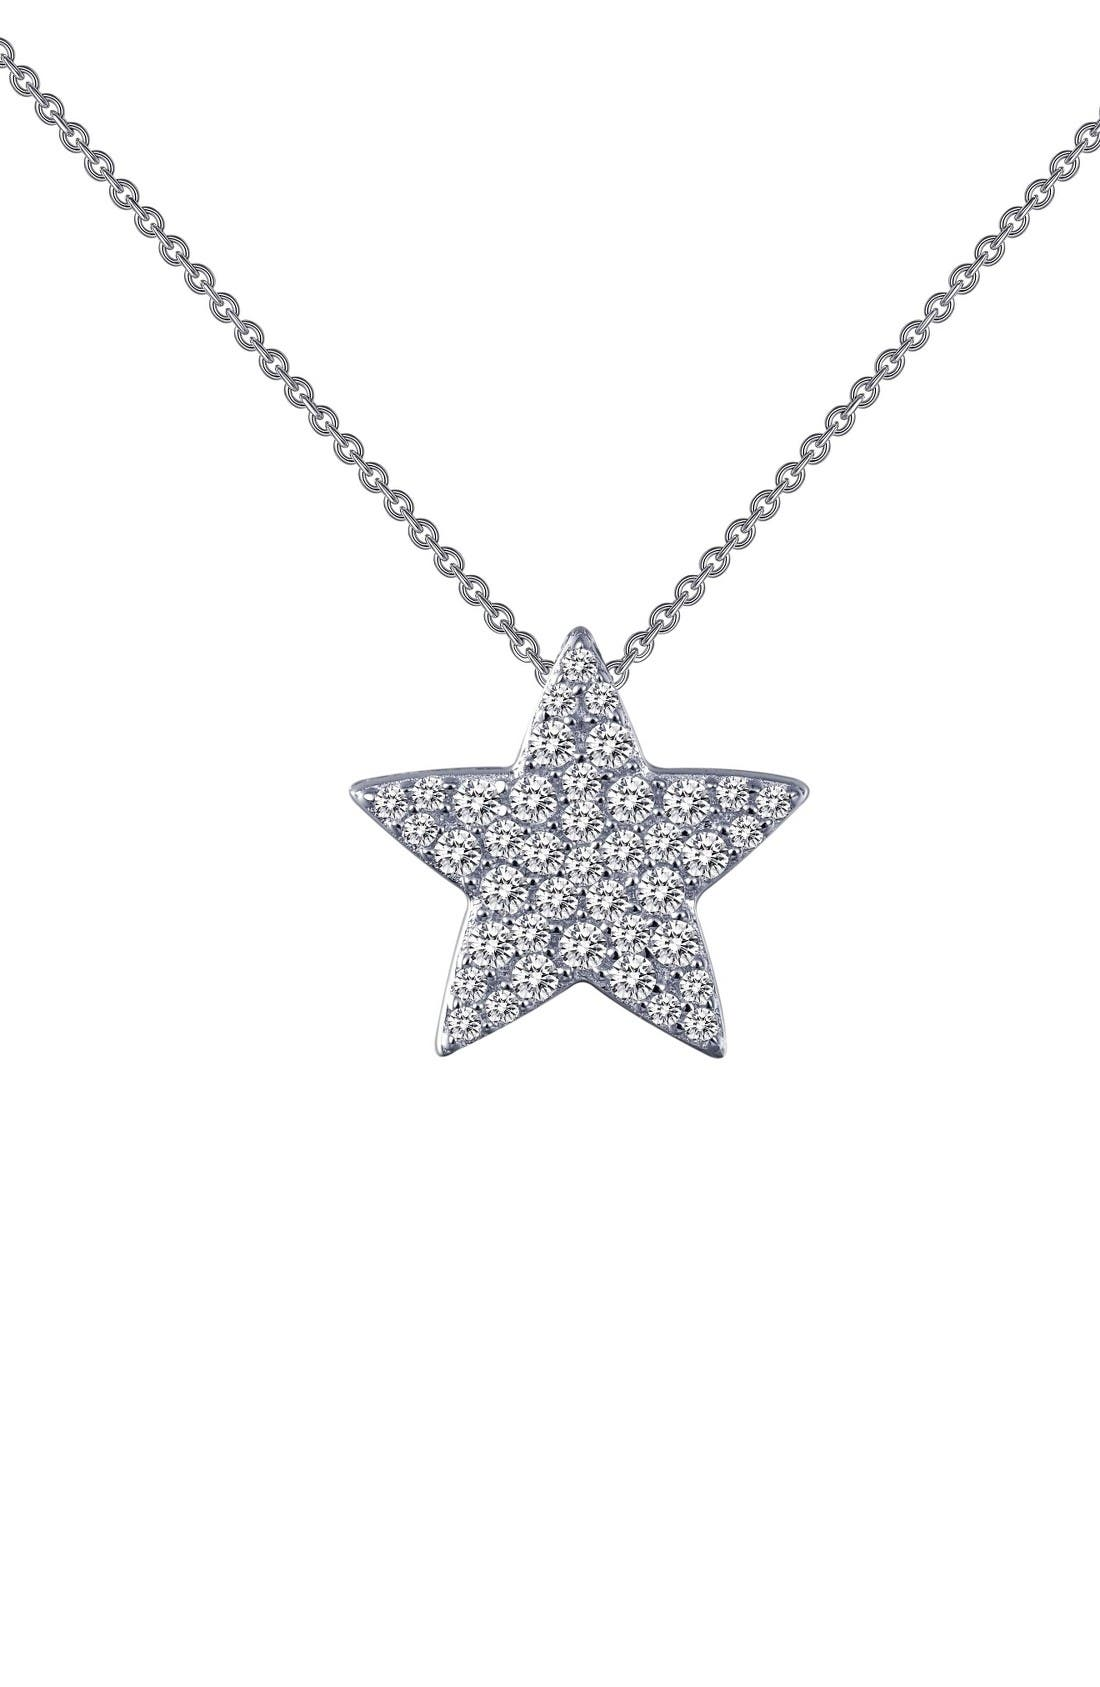 Simulated Diamond Star Pendant Necklace,                         Main,                         color, Silver